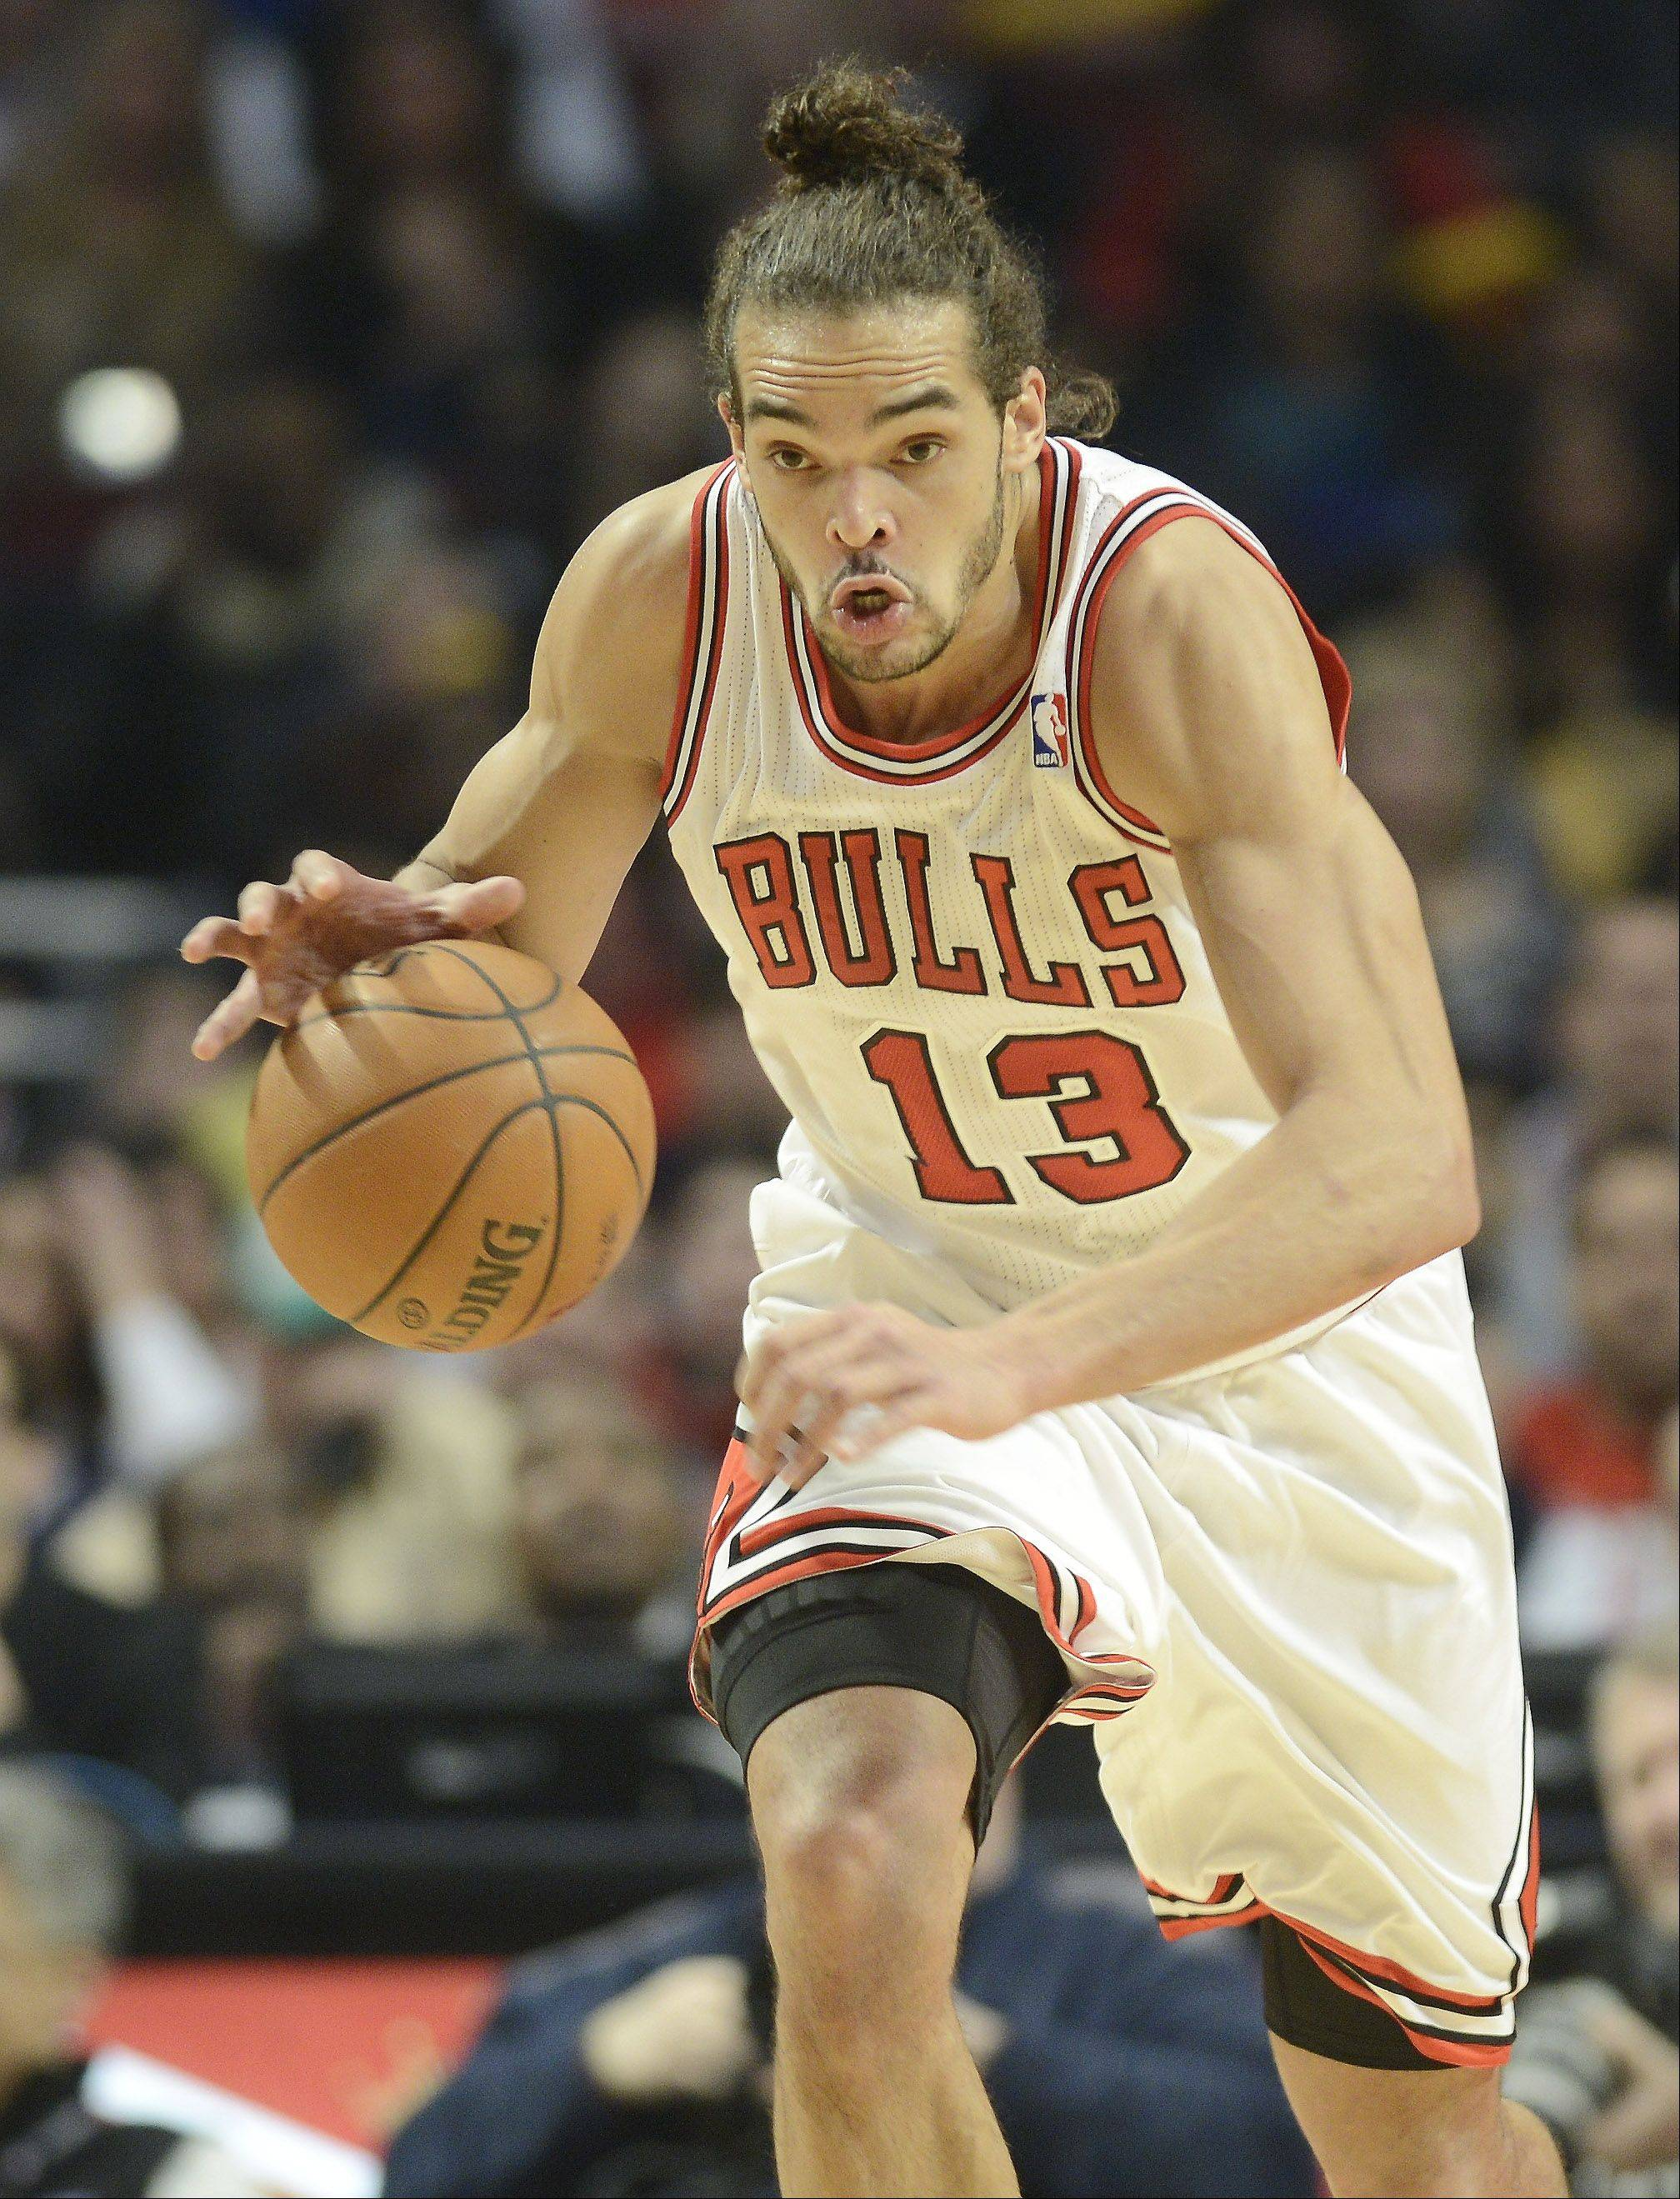 JOE LEWNARD/jlewnard@dailyherald.comJoakim Noah of the Bulls starts a fast break during Saturday's game against Memphis.